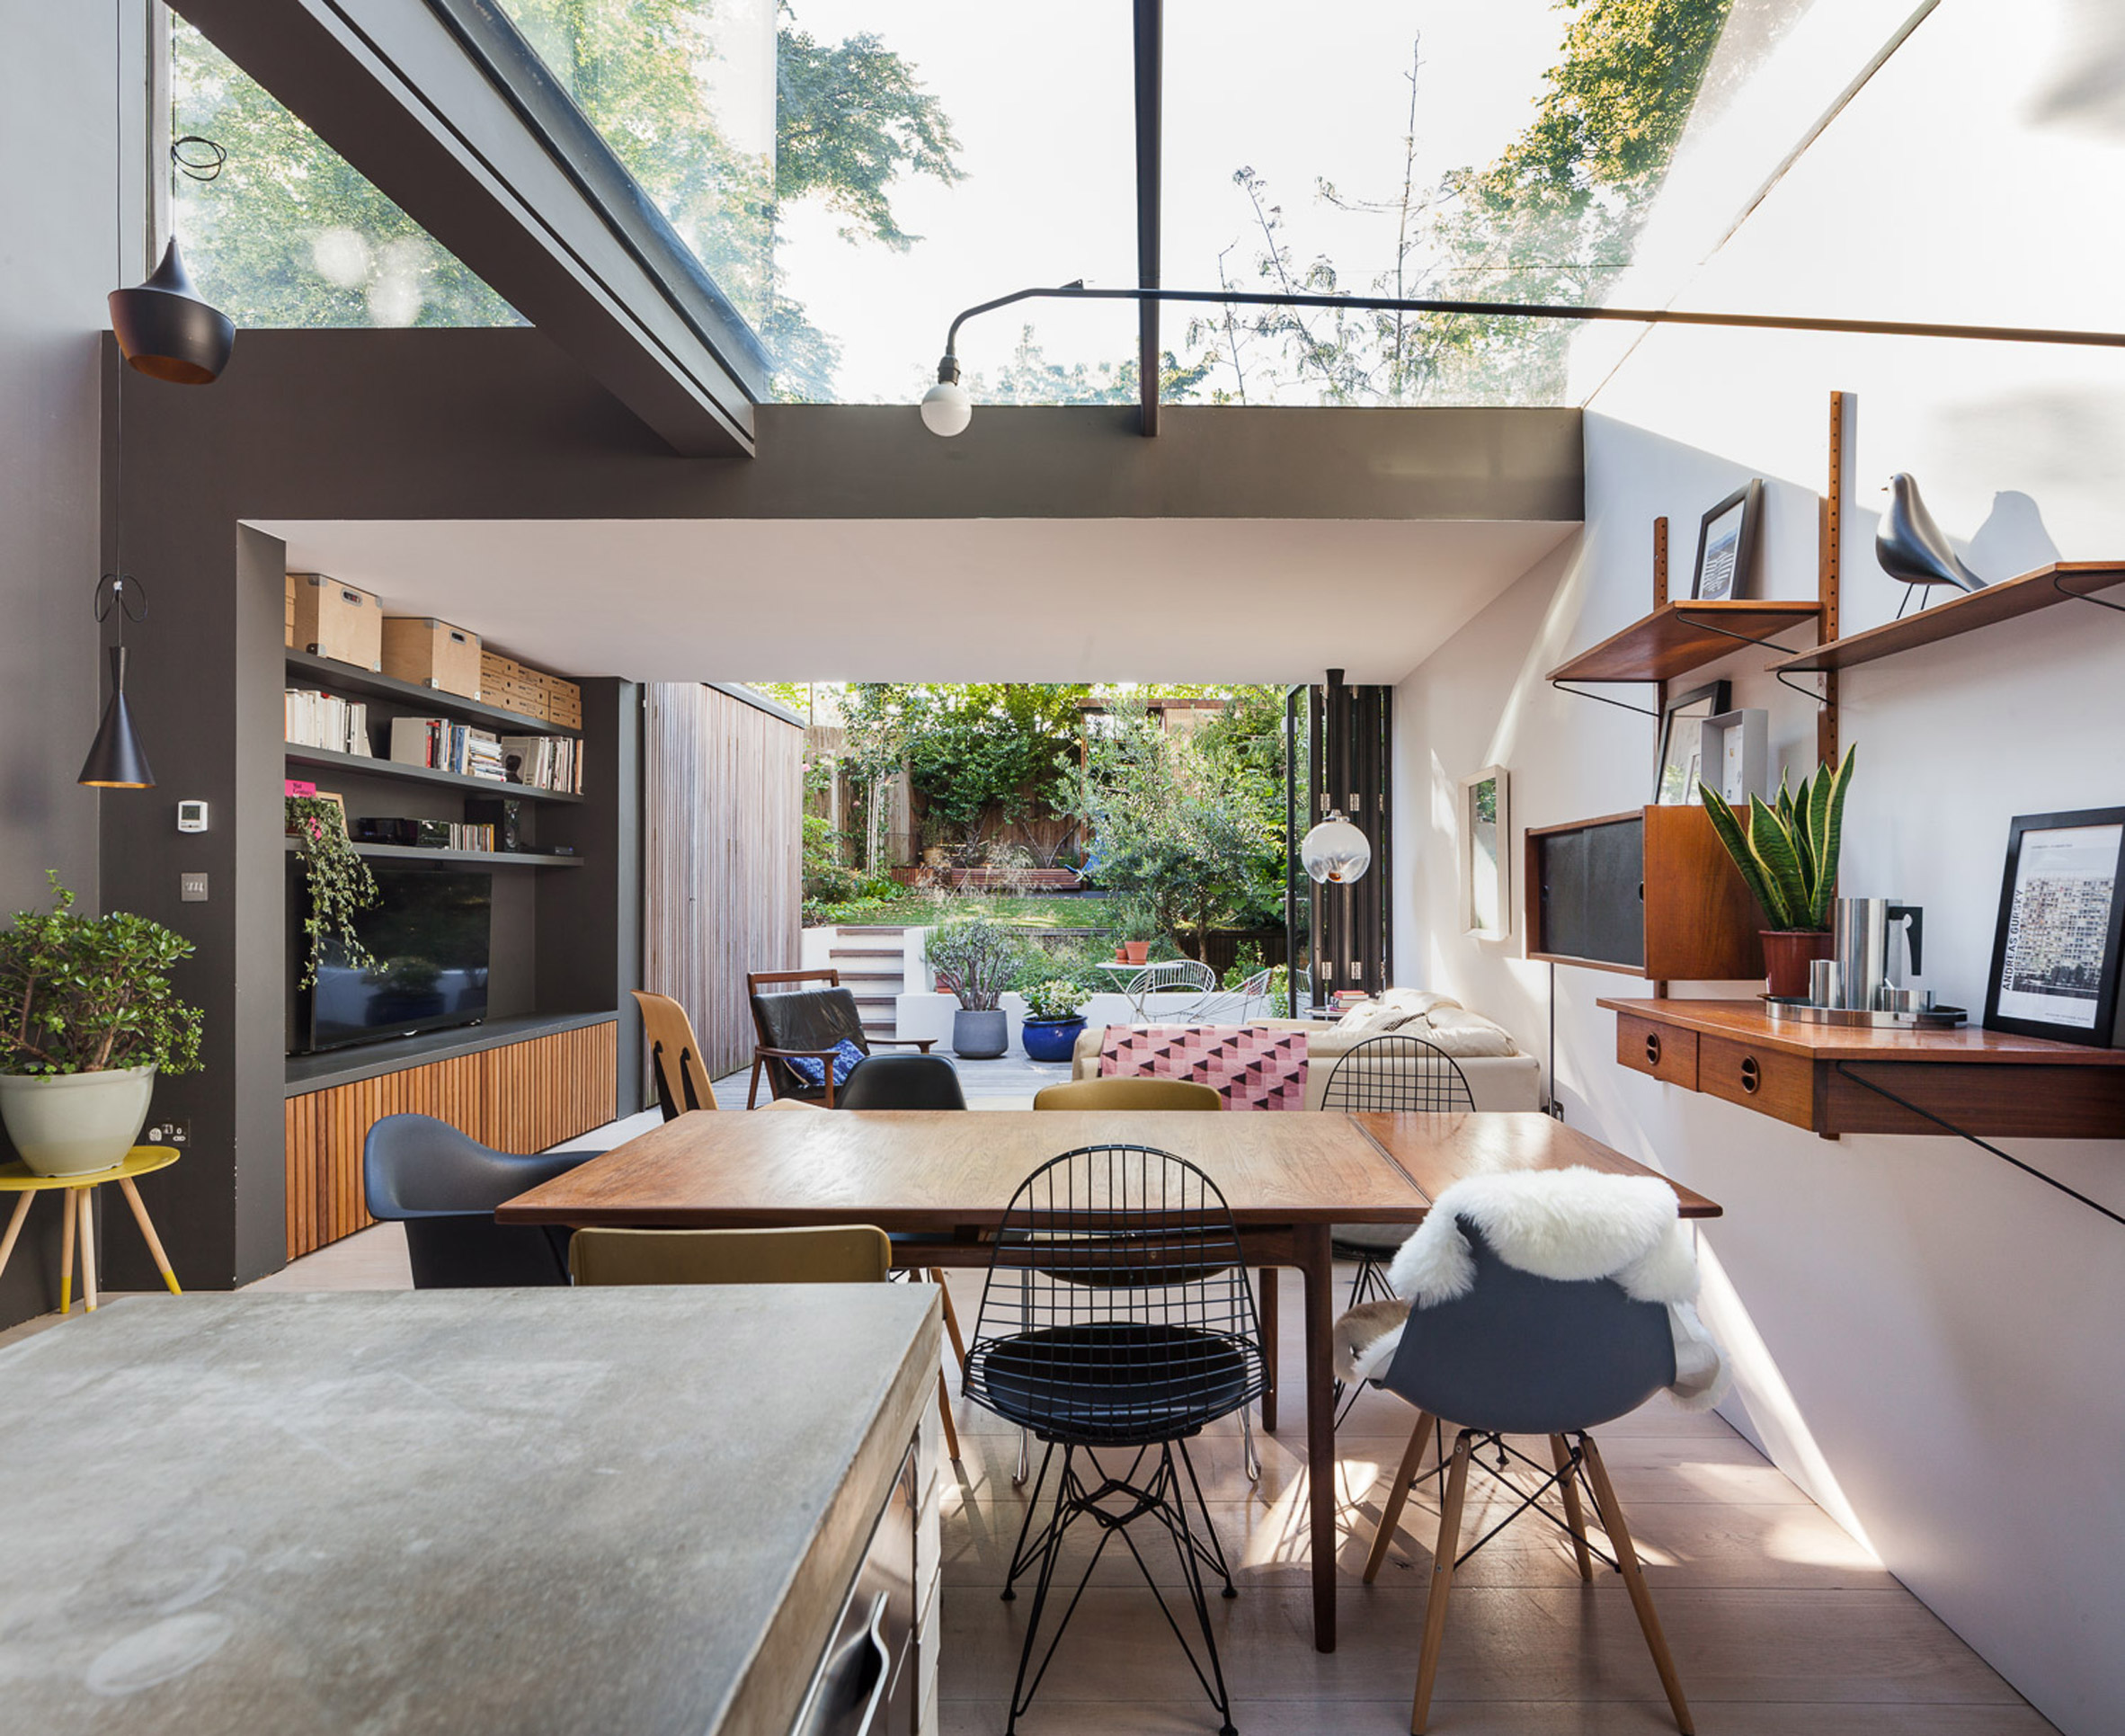 Outdoor Küche Im Wintergarten Home Extension Ideas 10 Looks To Inspire Your Renovation